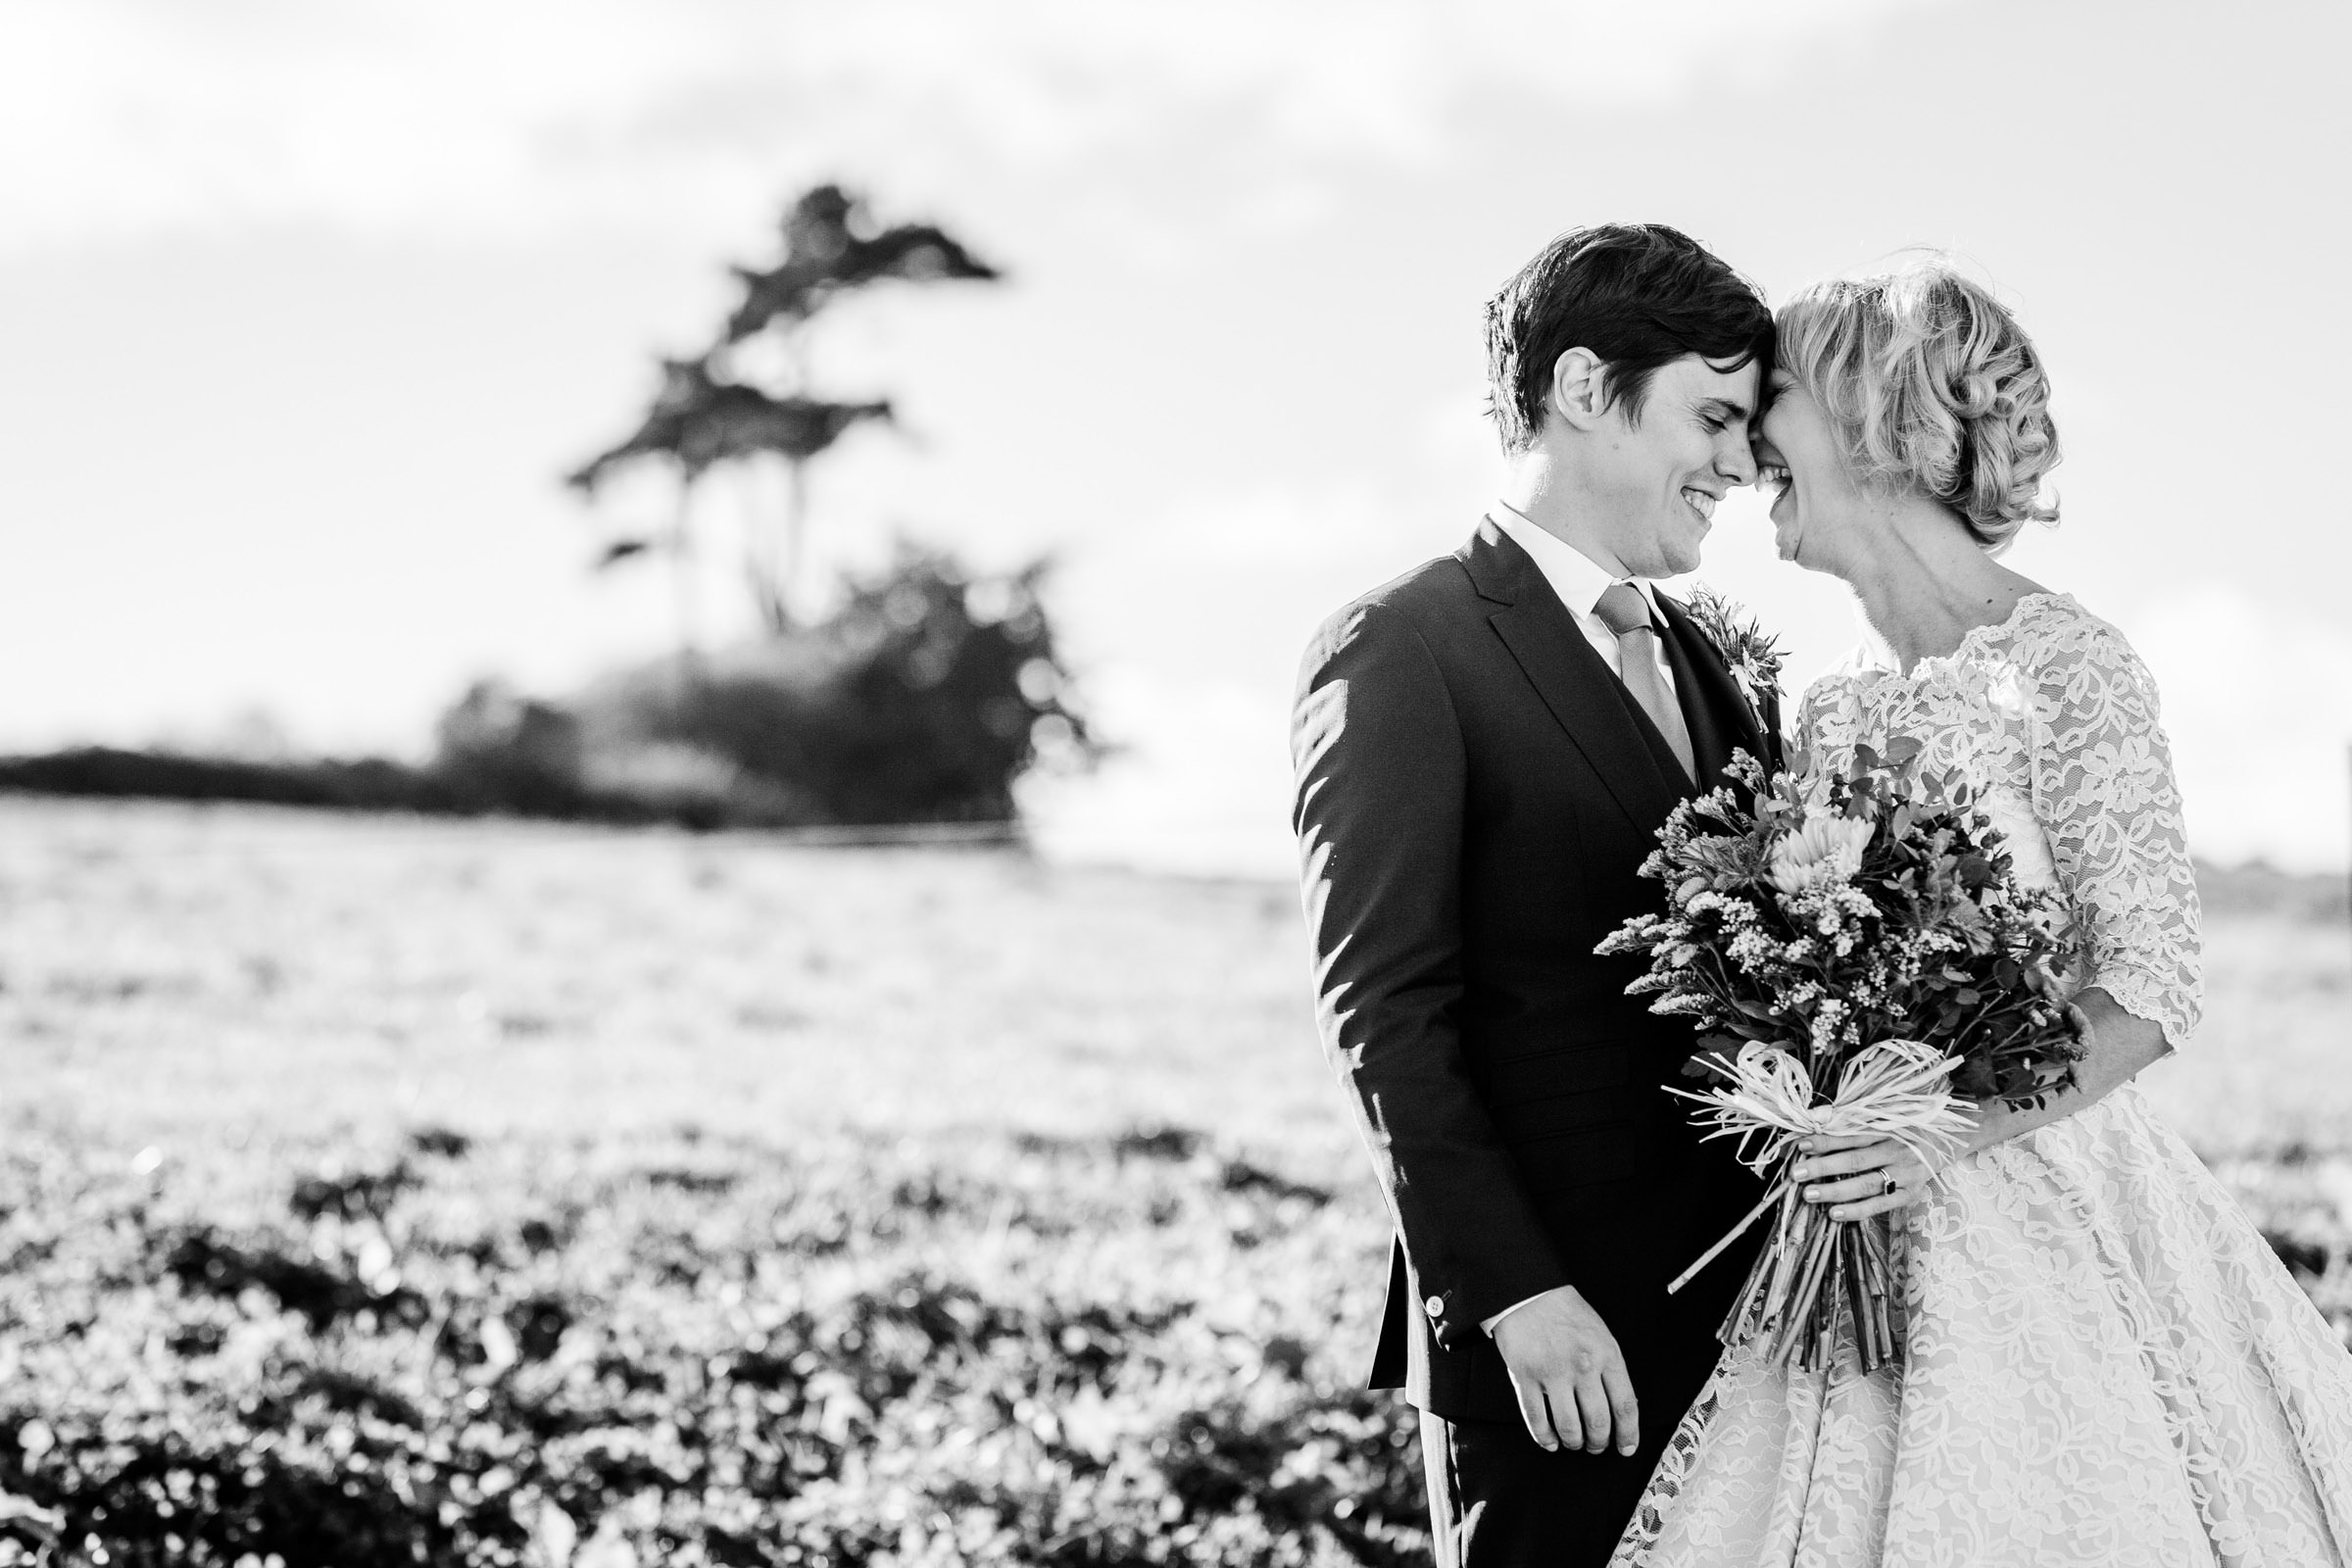 Reportage Wedding Photography South Wales 043.jpg